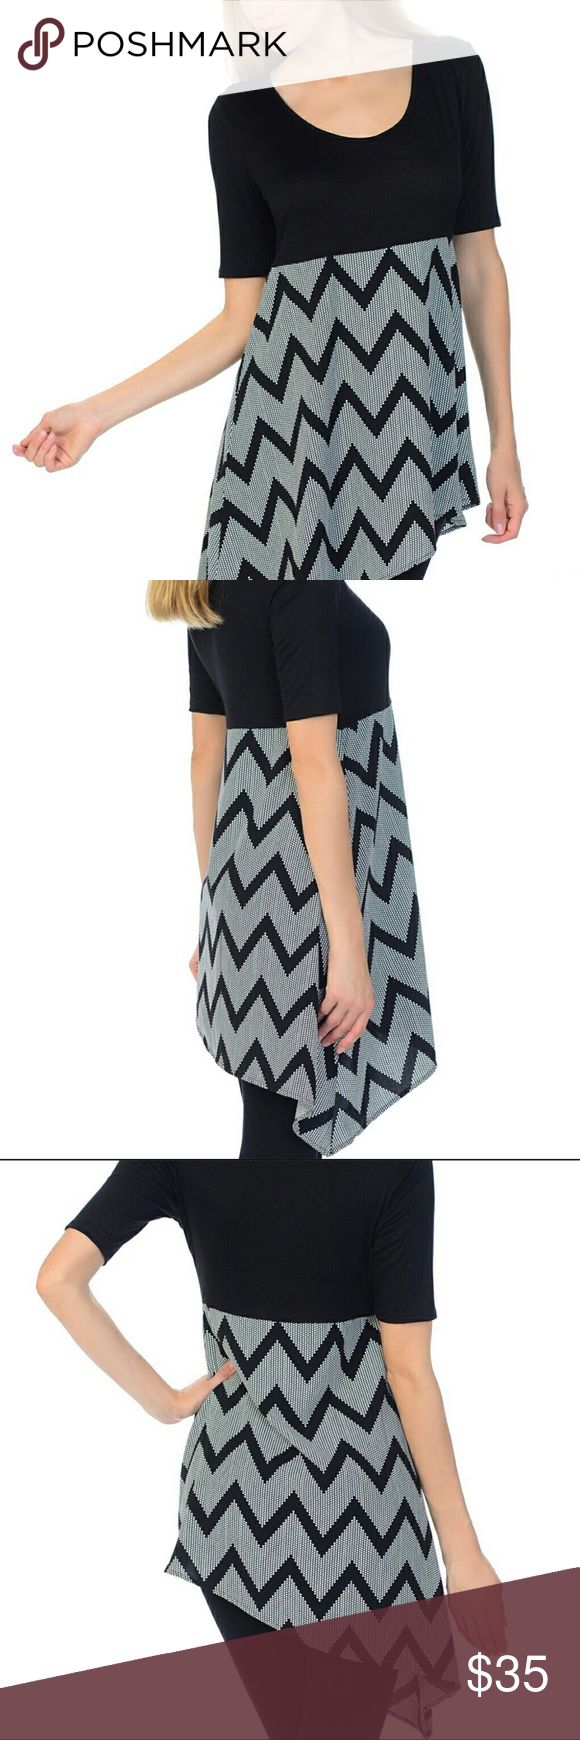 "Plus Size Chevron Assymetrical Tunic Plus size assymetrical tunic. Self: 97% rayon, 3% spandex, count: 100% polyester. Made in the USA. 28.5"" long. New.  Love this shirt. It fits true to size. I'm a 3X and it fits me perfectly. Bellino Clothing Tops Tunics"